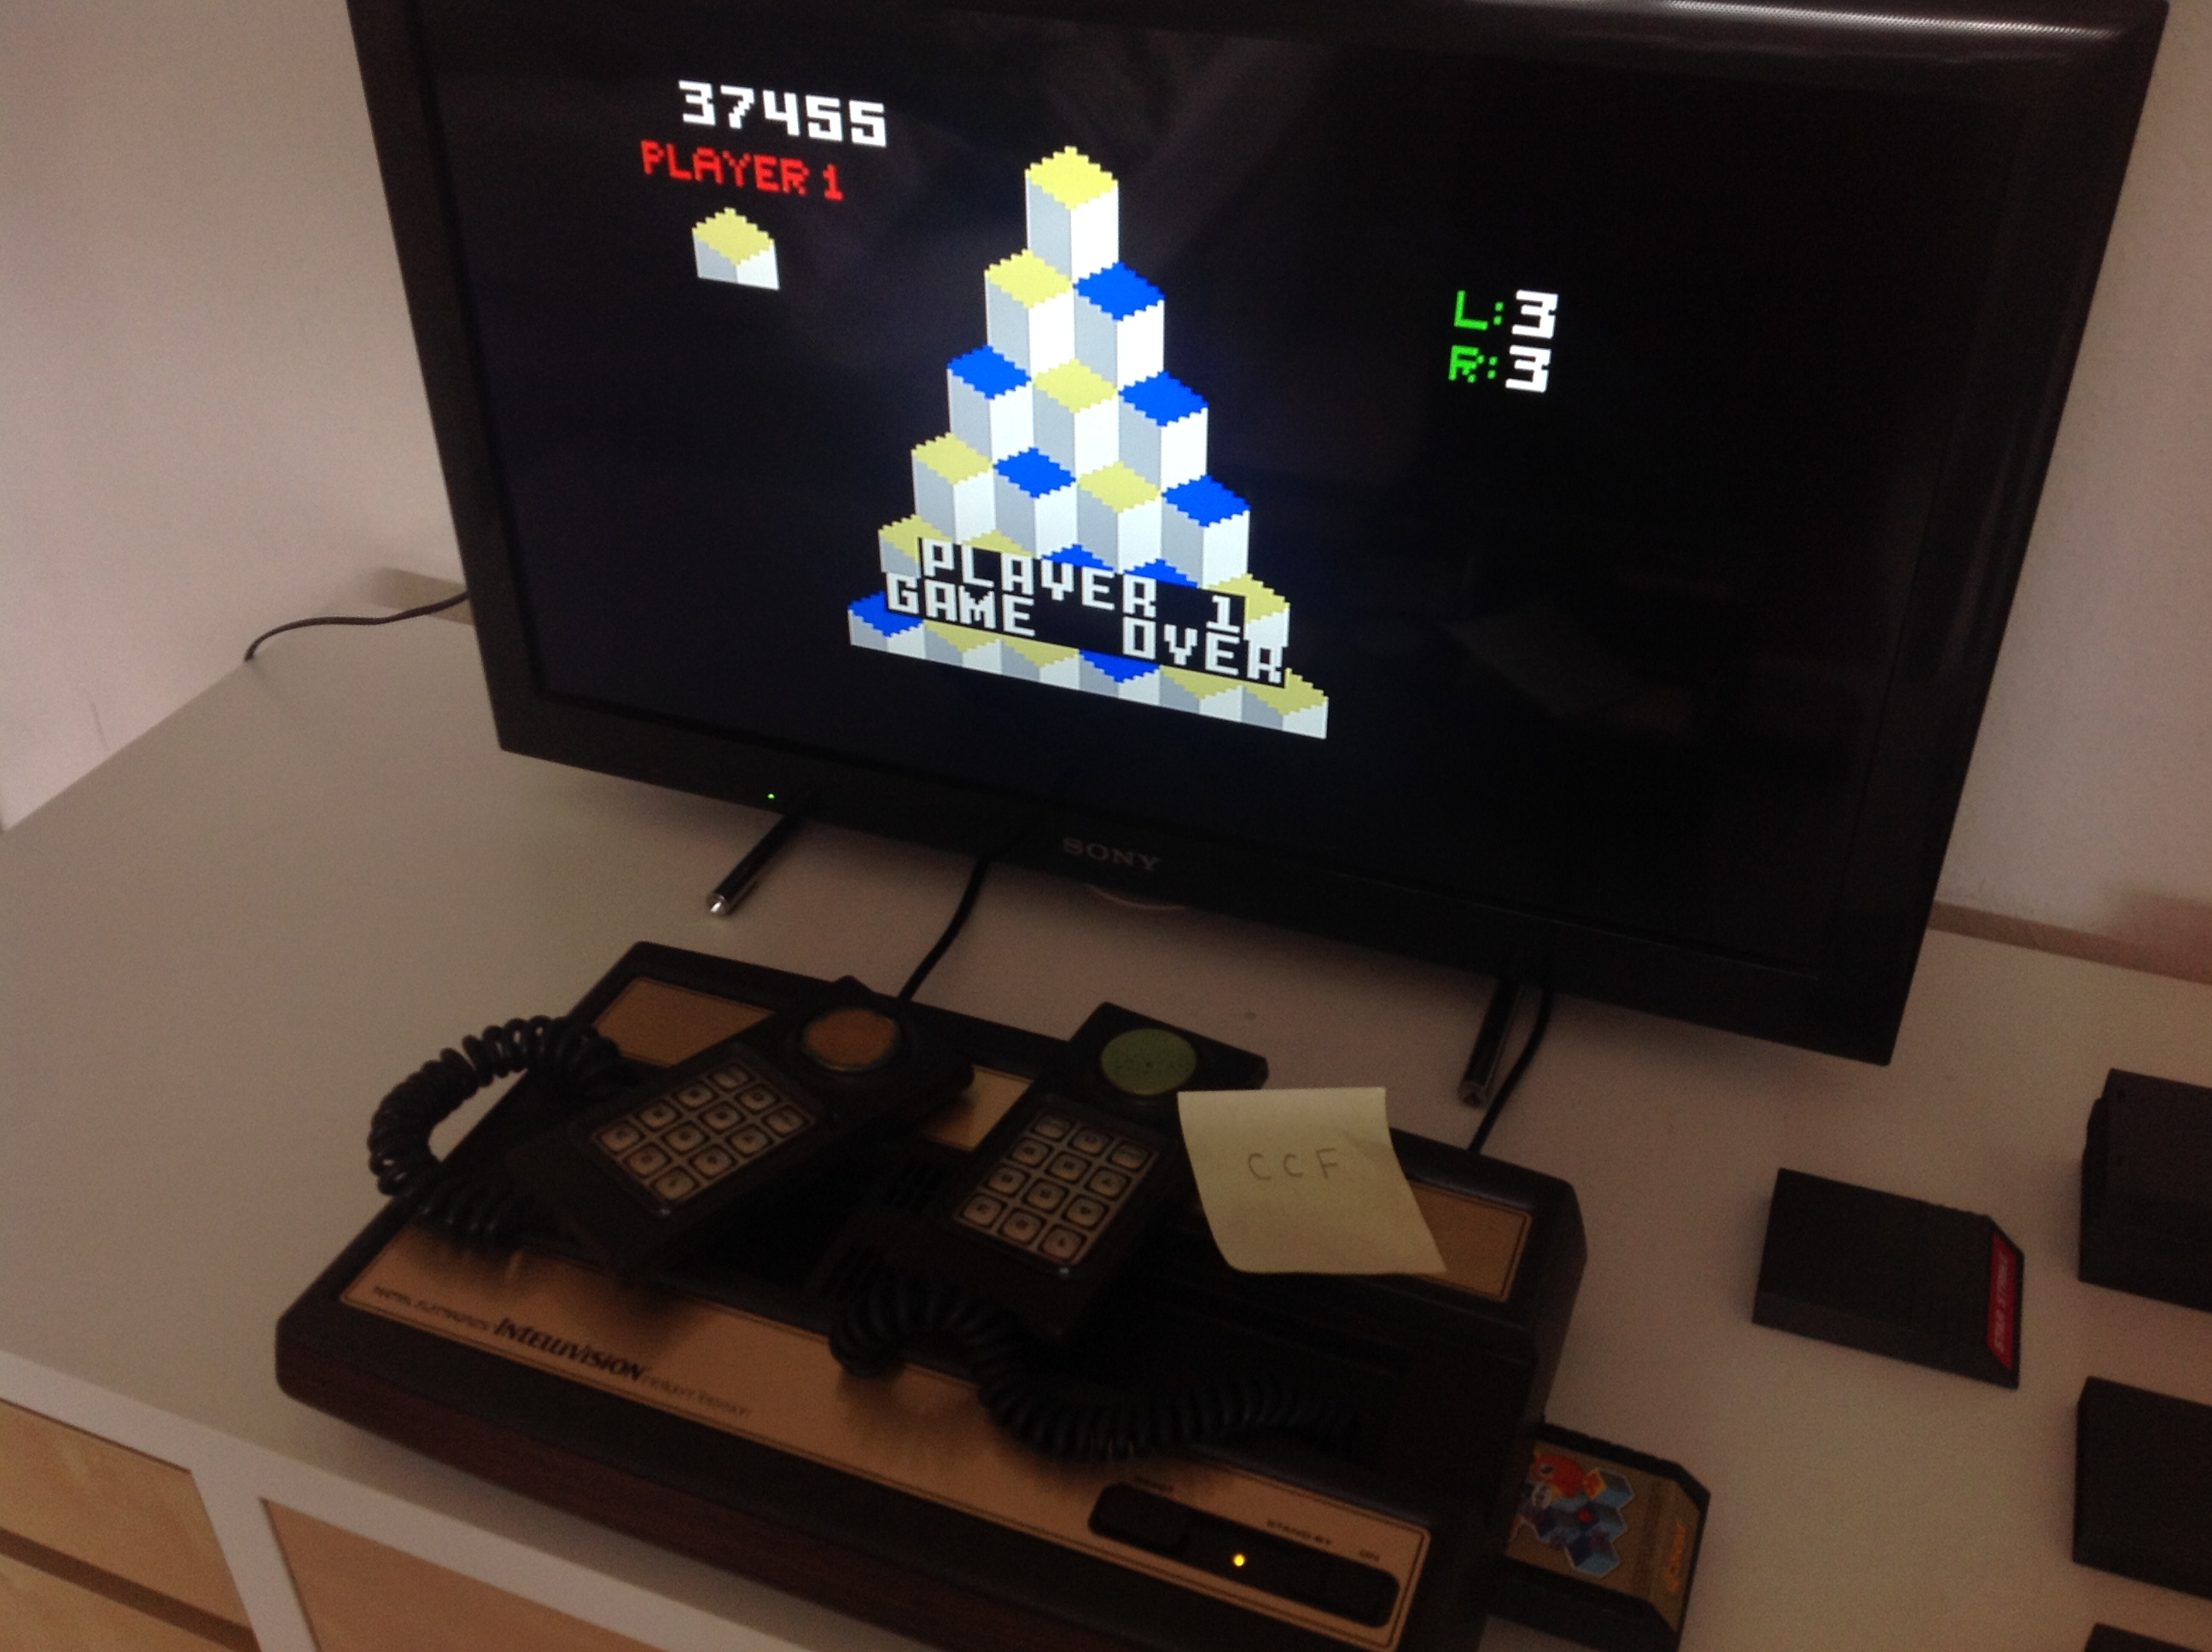 CoCoForest: Q*Bert (Intellivision) 37,455 points on 2018-08-17 11:19:06